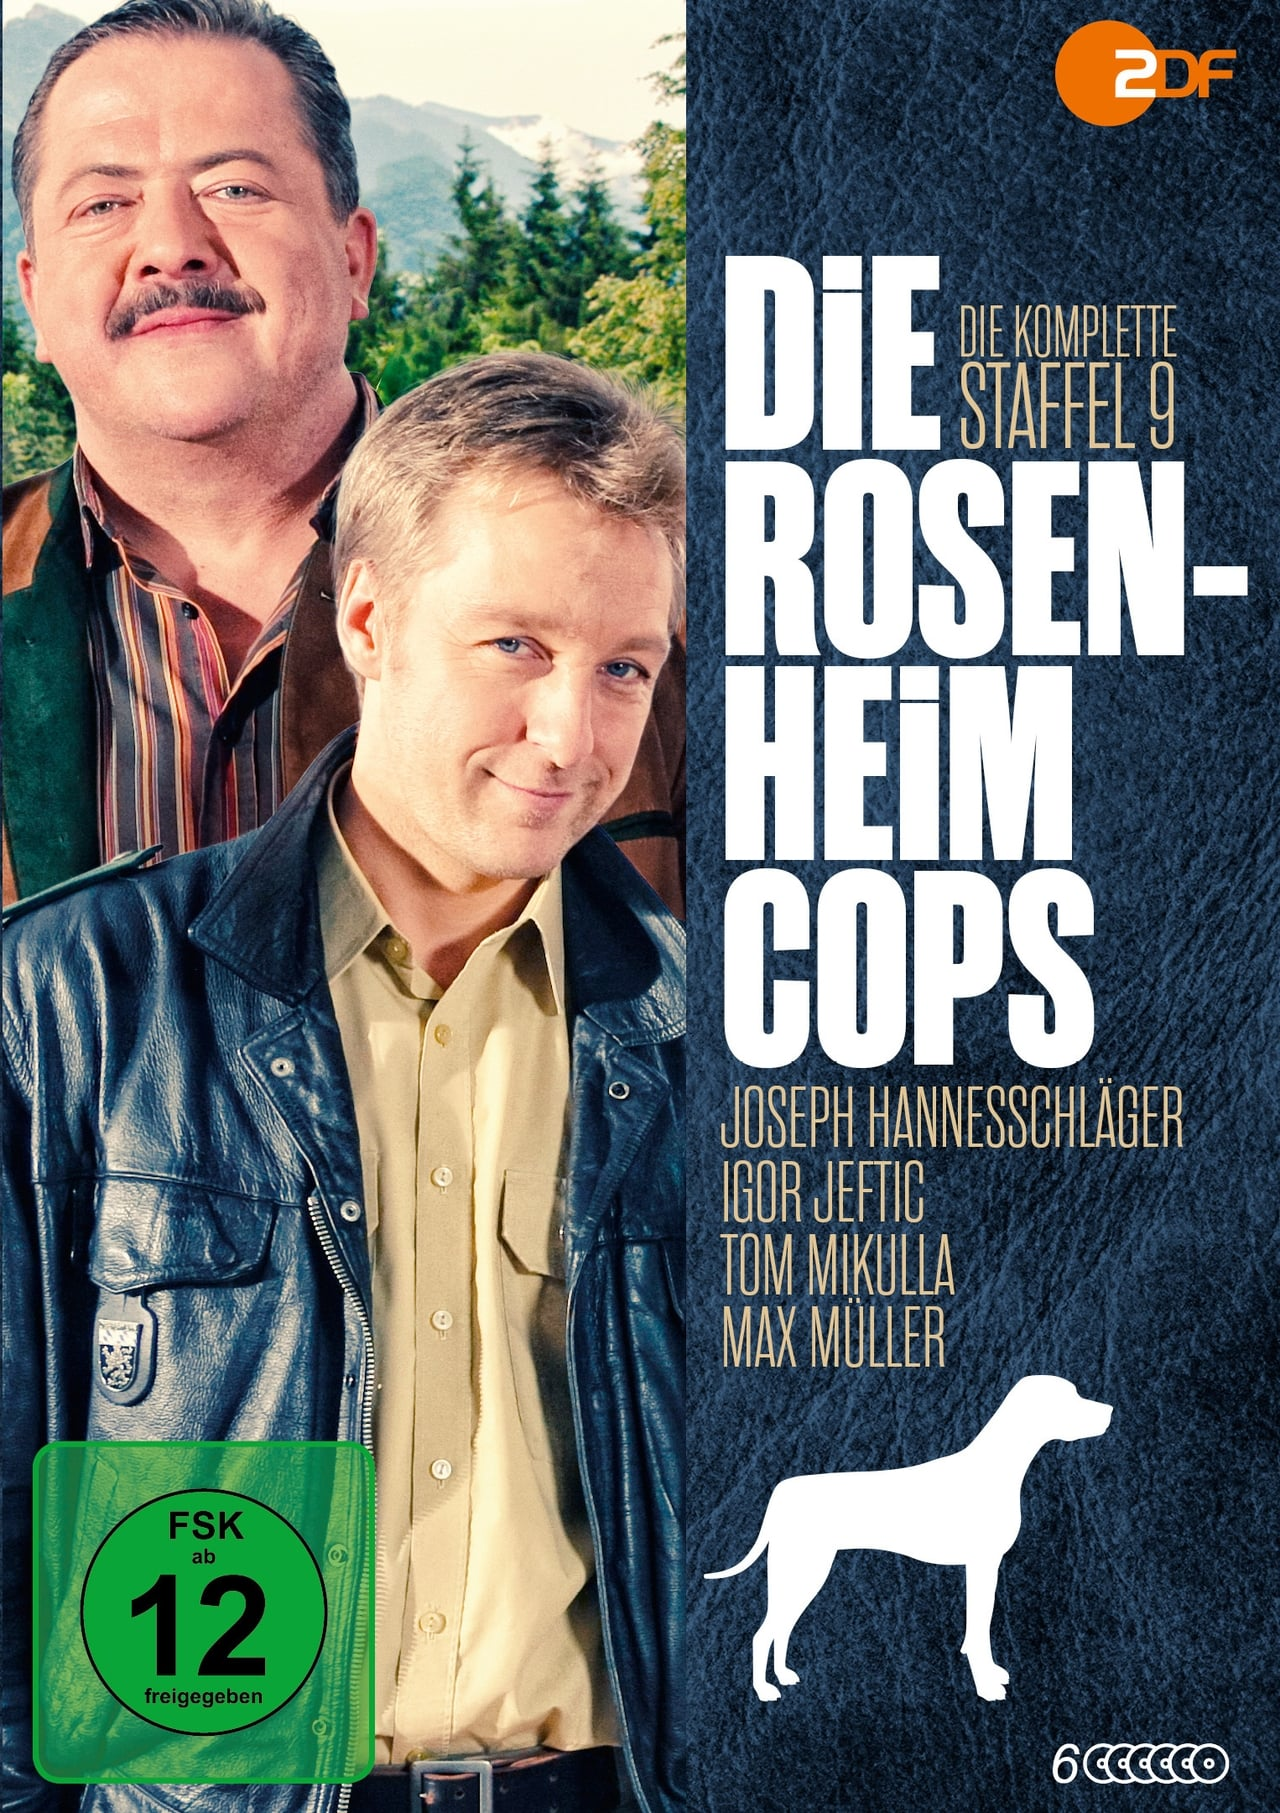 The Rosenheim Cops Season 9 (2009) putlockers cafe